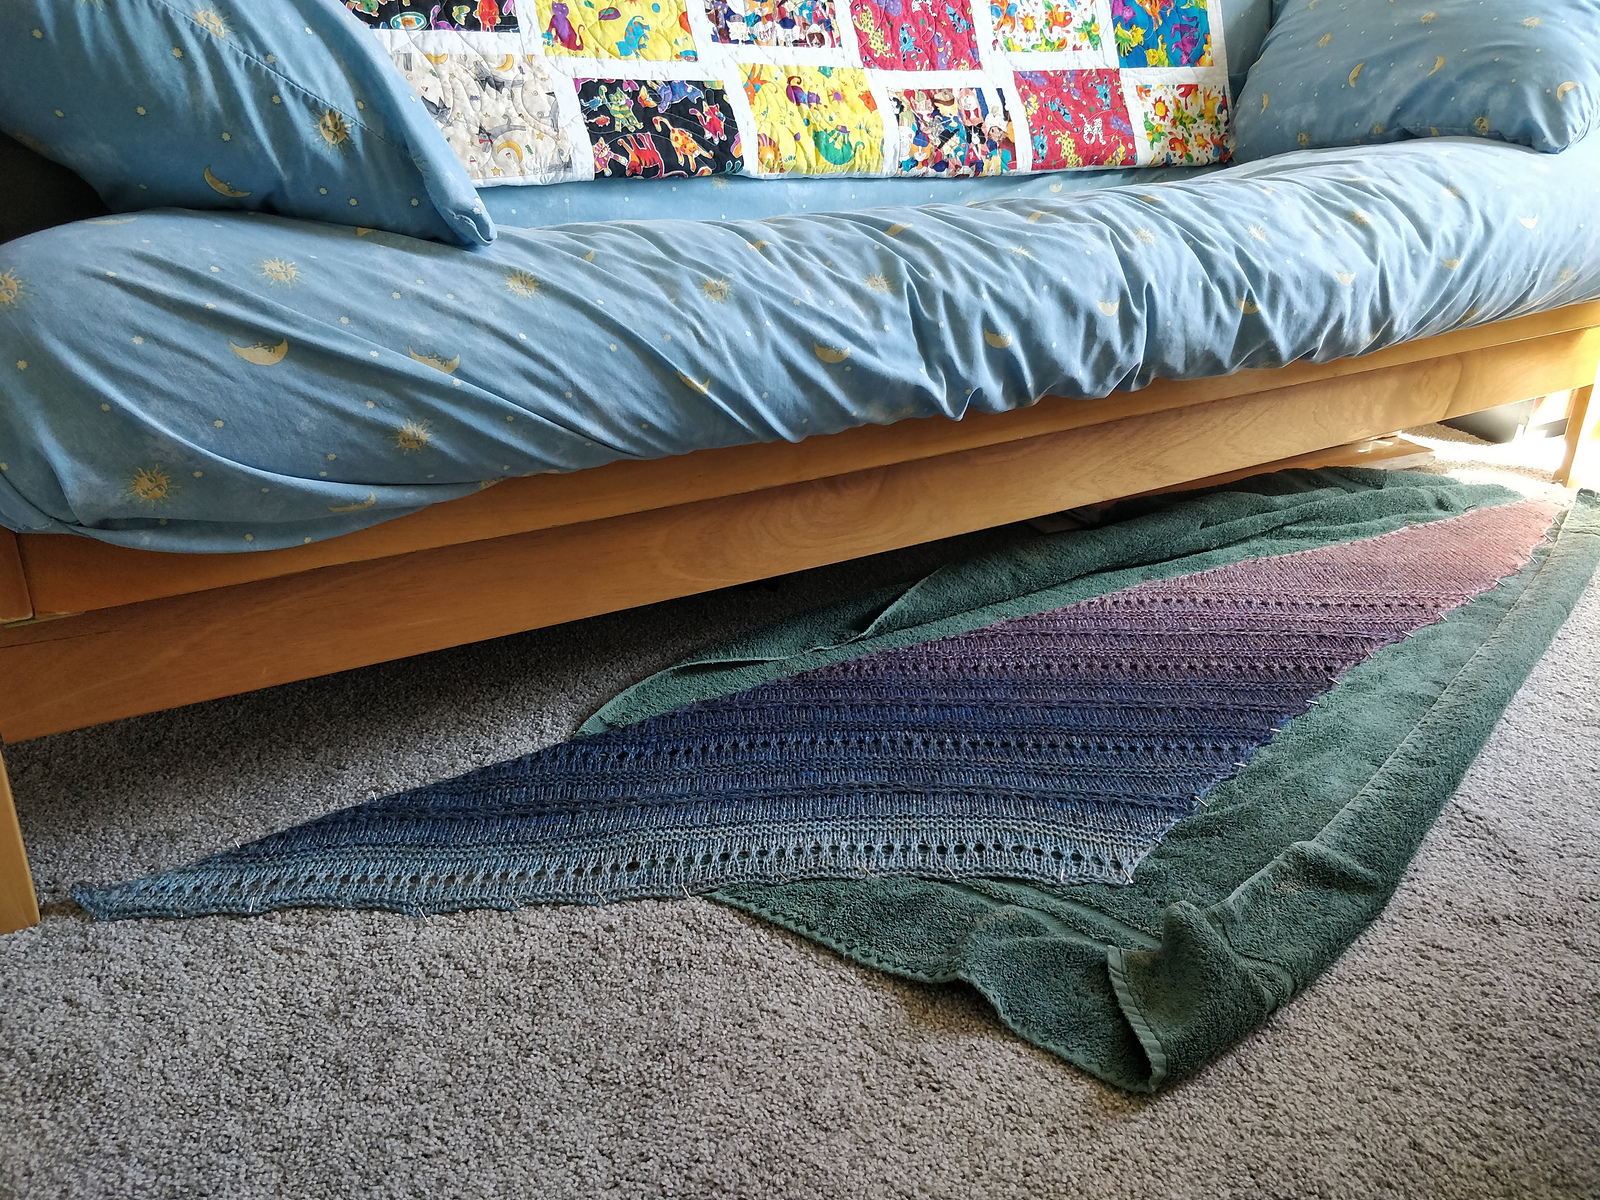 A handknit shawl of handspun yarn is pinned out on a towel on the floor to dry, underneath a futon with moon-and-stars sheets and a quilt hanging on the back. The shawl is a shallow triangle with alternating bands of texture and eyelets. It was knit from one narrow pink end through a gradient of purples and blues to a wide finish of light blue.